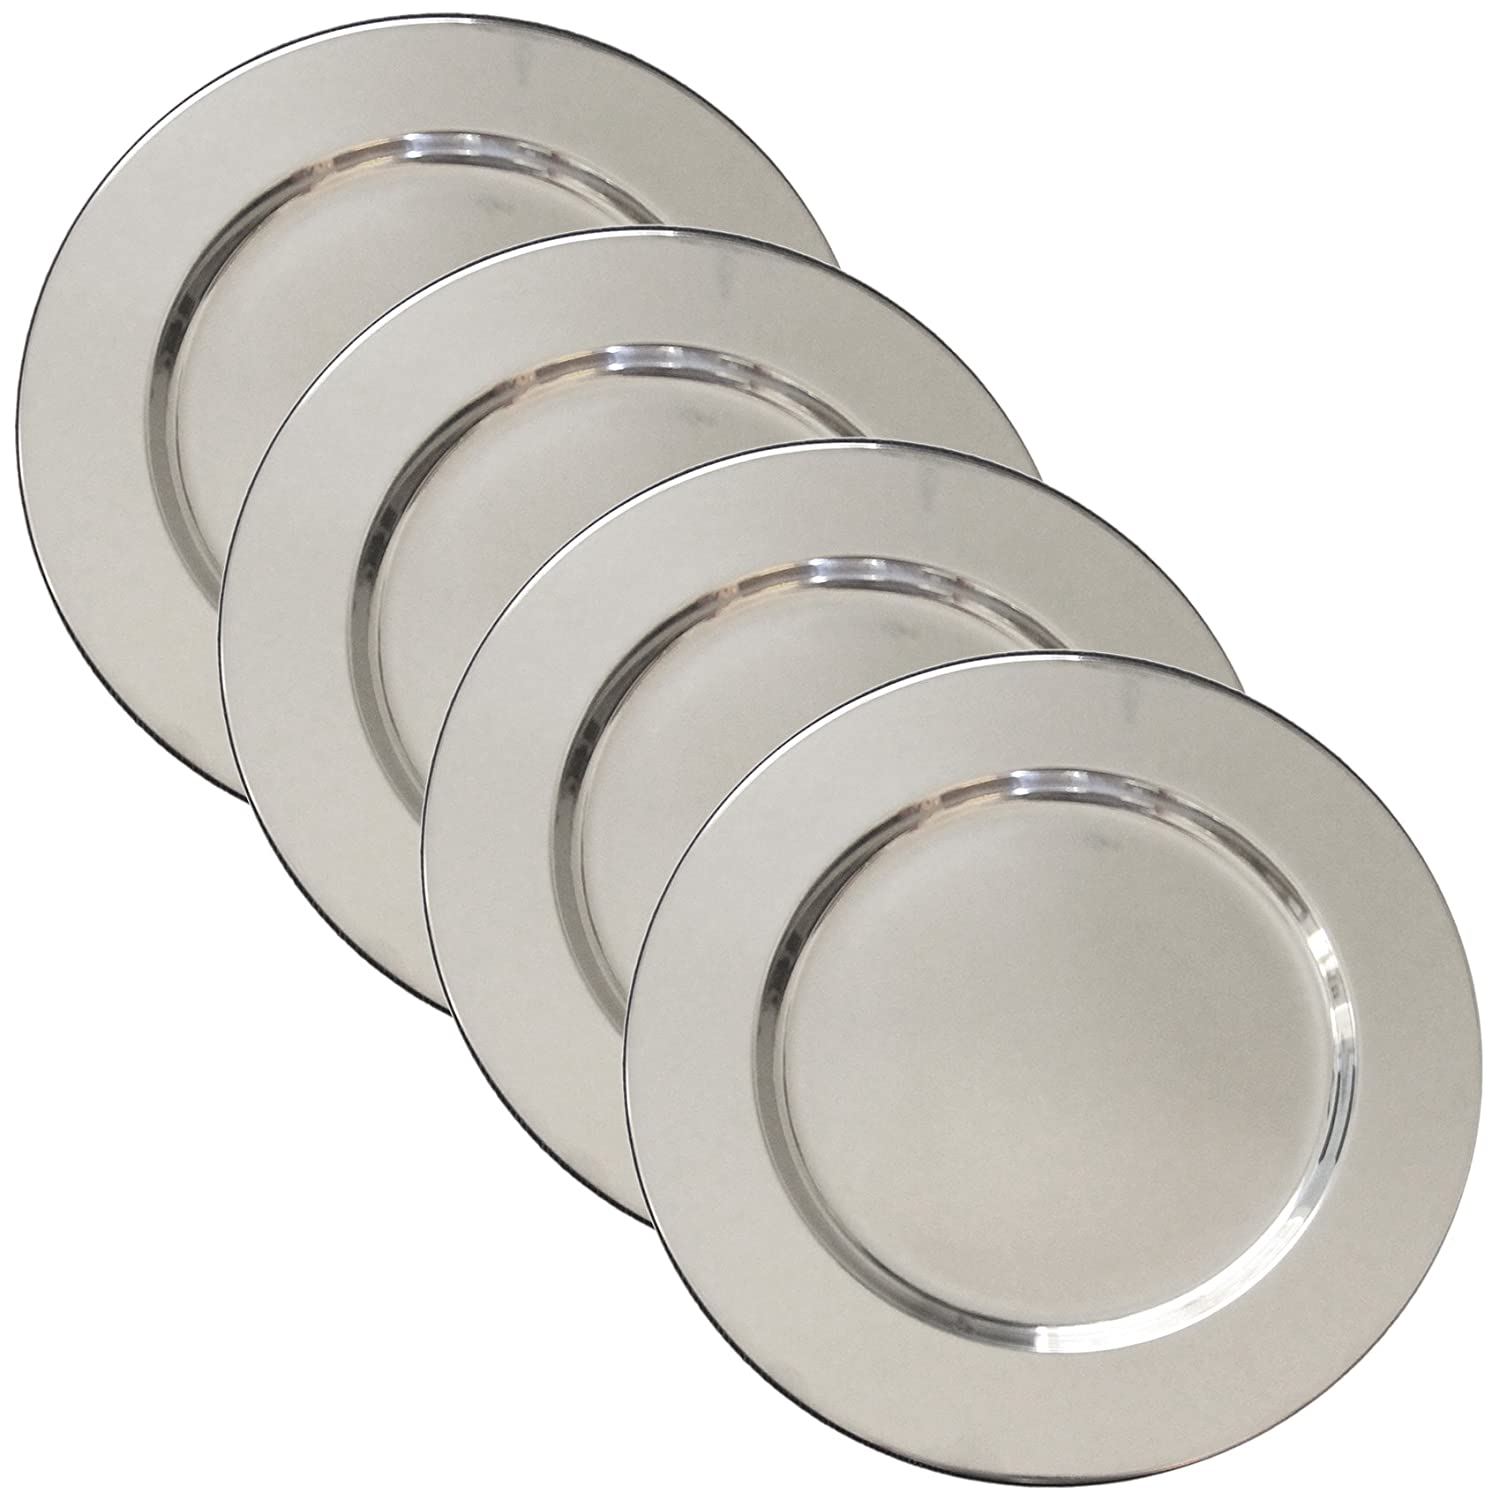 Set of 4 Stainless Steel Charger Plates - Handmade 12